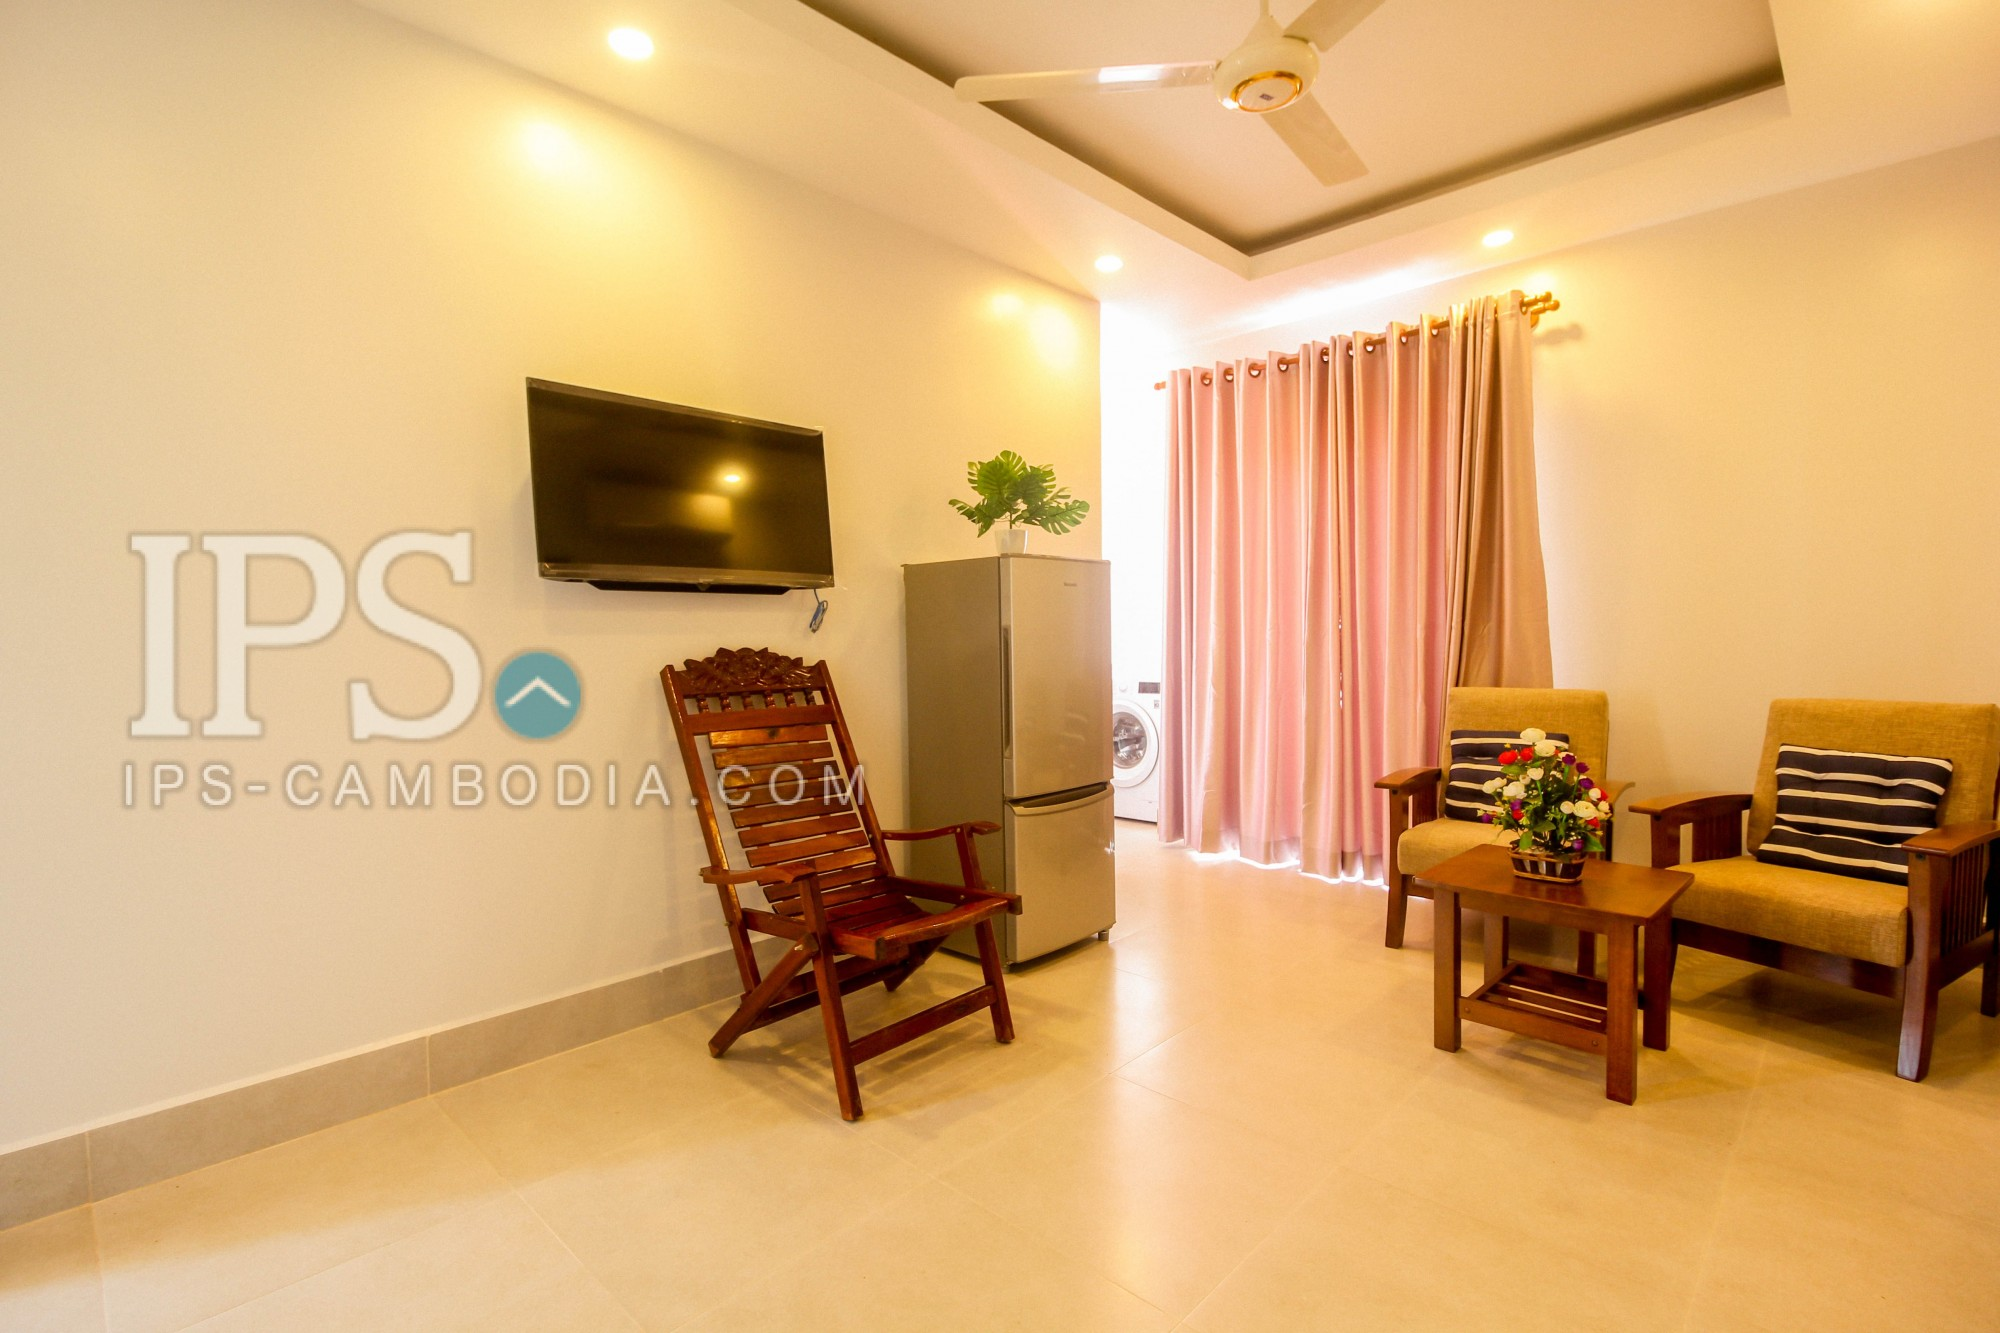 Newly 2 Bed Room Apartment For Rent in Wat Damnak, Siem Reap